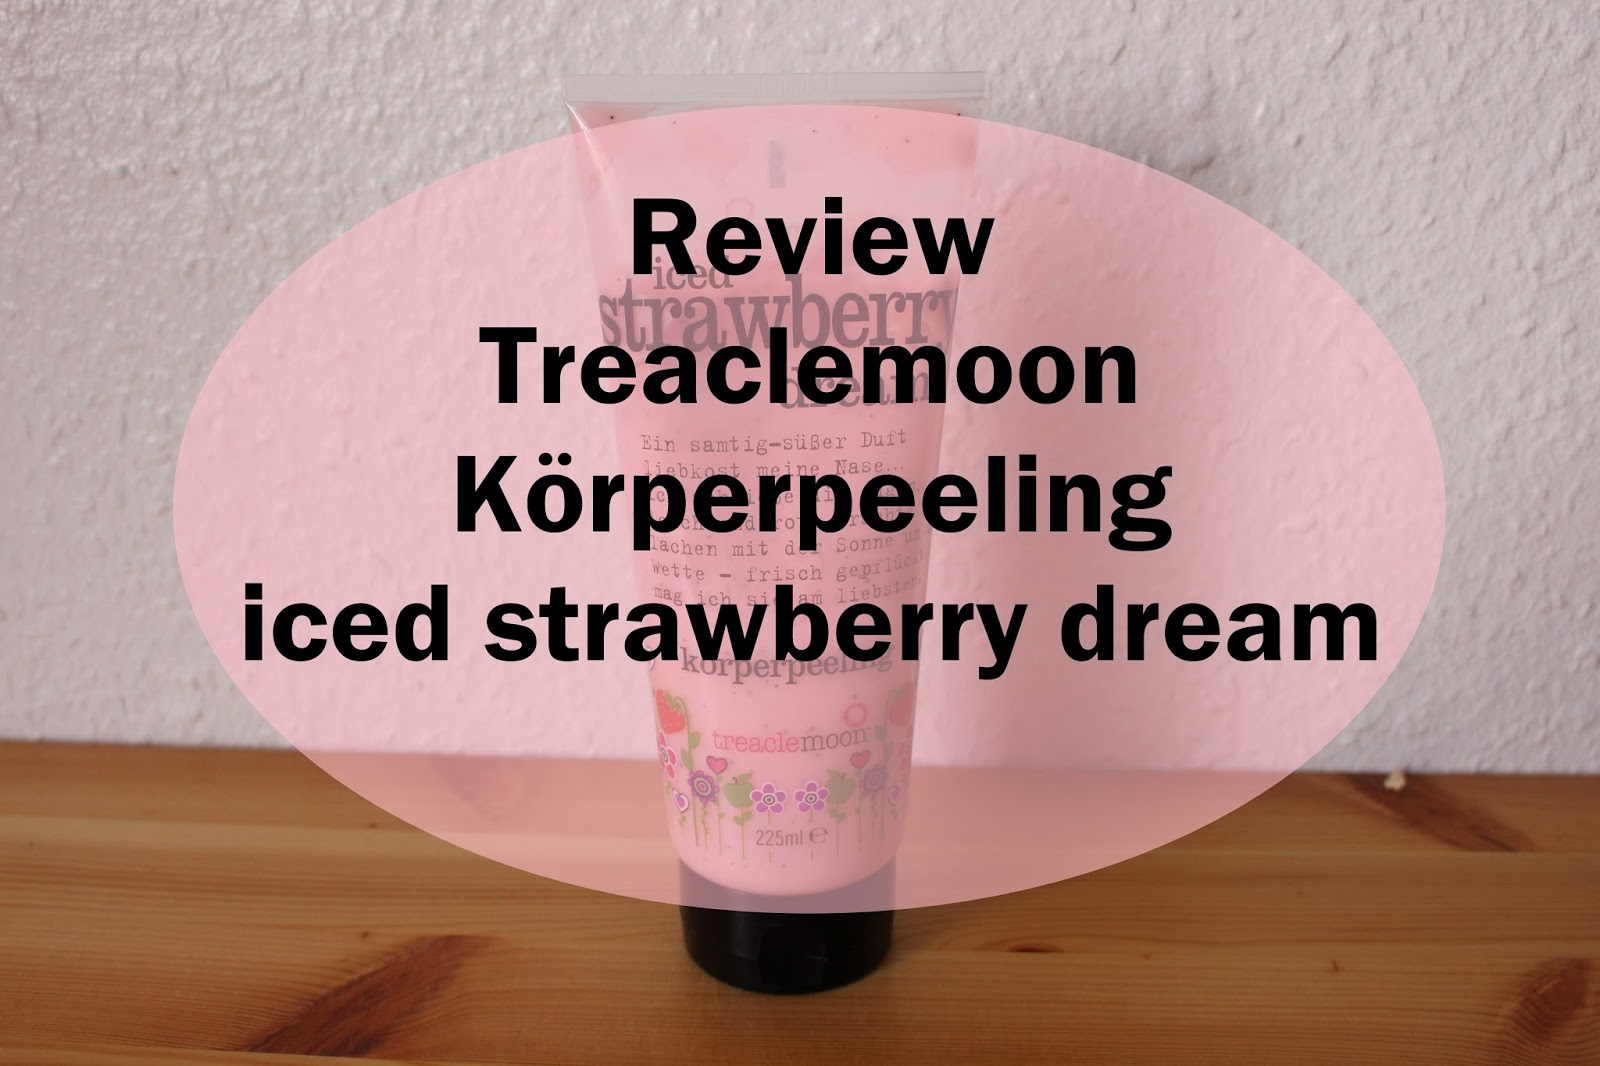 treaclemoon Körperpeeling iced strawberry dream